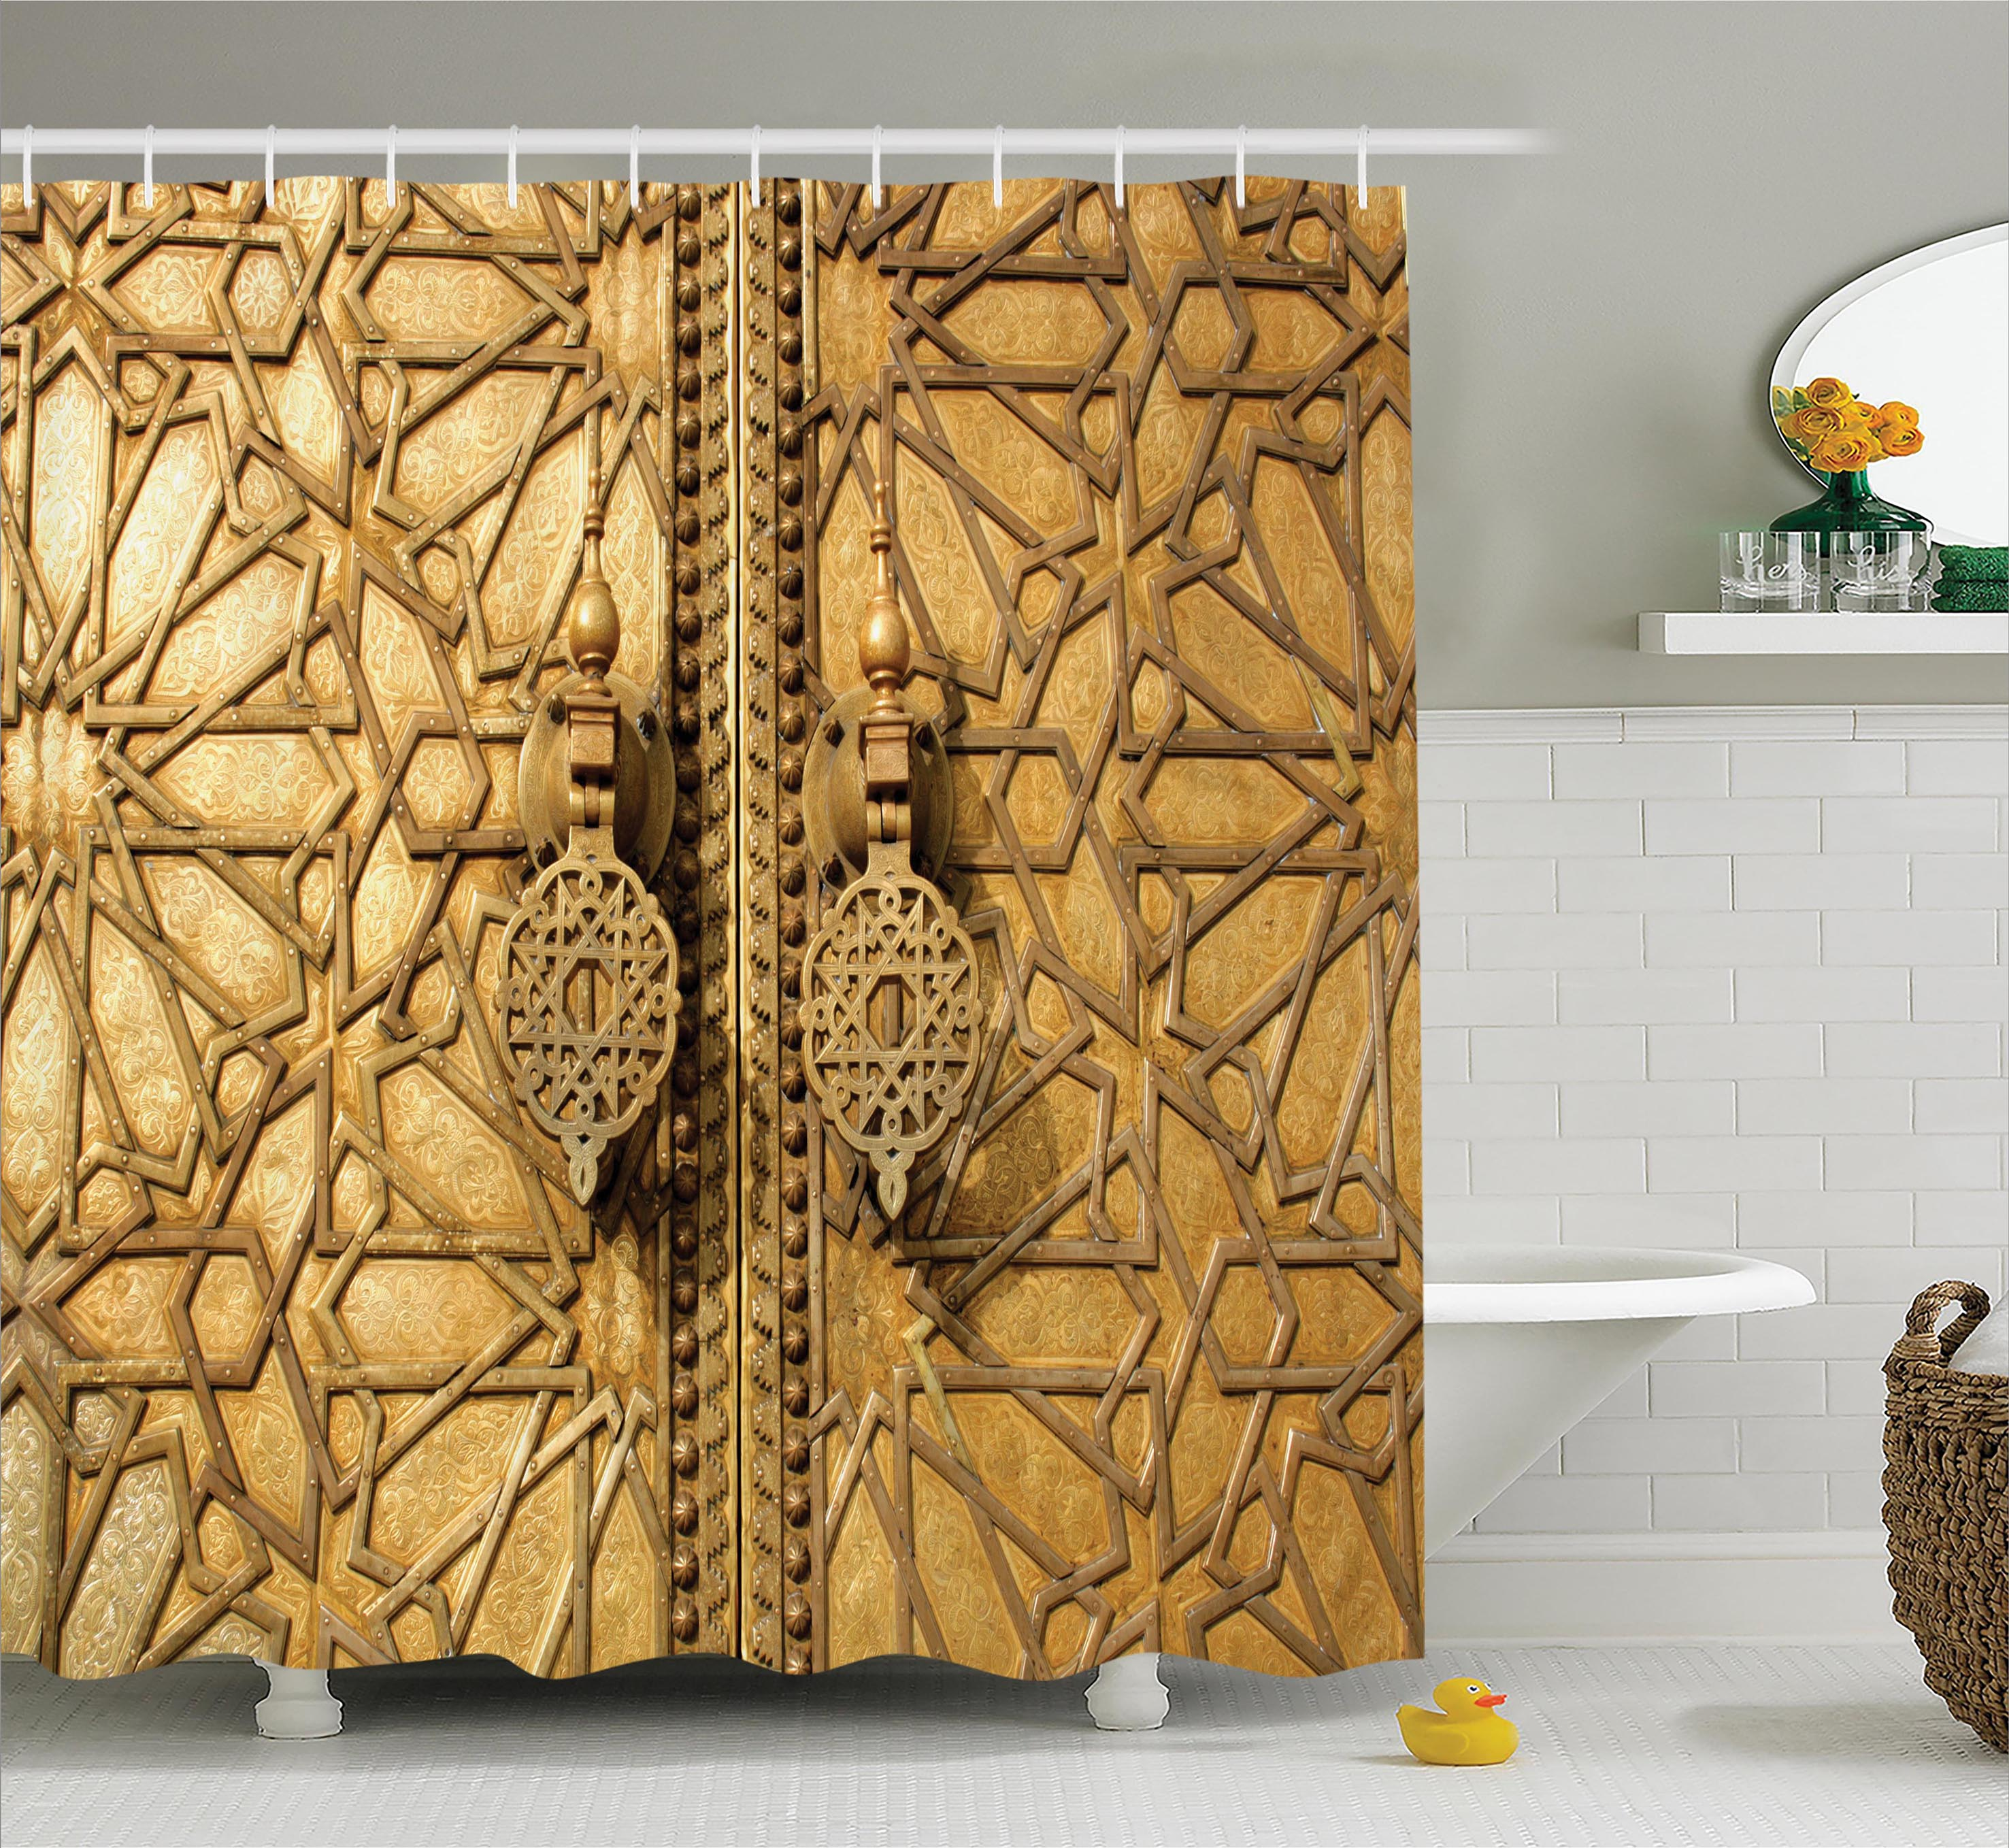 Moroccan Decor Shower Curtain Set, Main Golden Gates Of Royal Palace In Marrakesh, Morocco Travel Tourist Attraction, Bathroom Accessories, 69W X 70L Inches, By Ambesonne